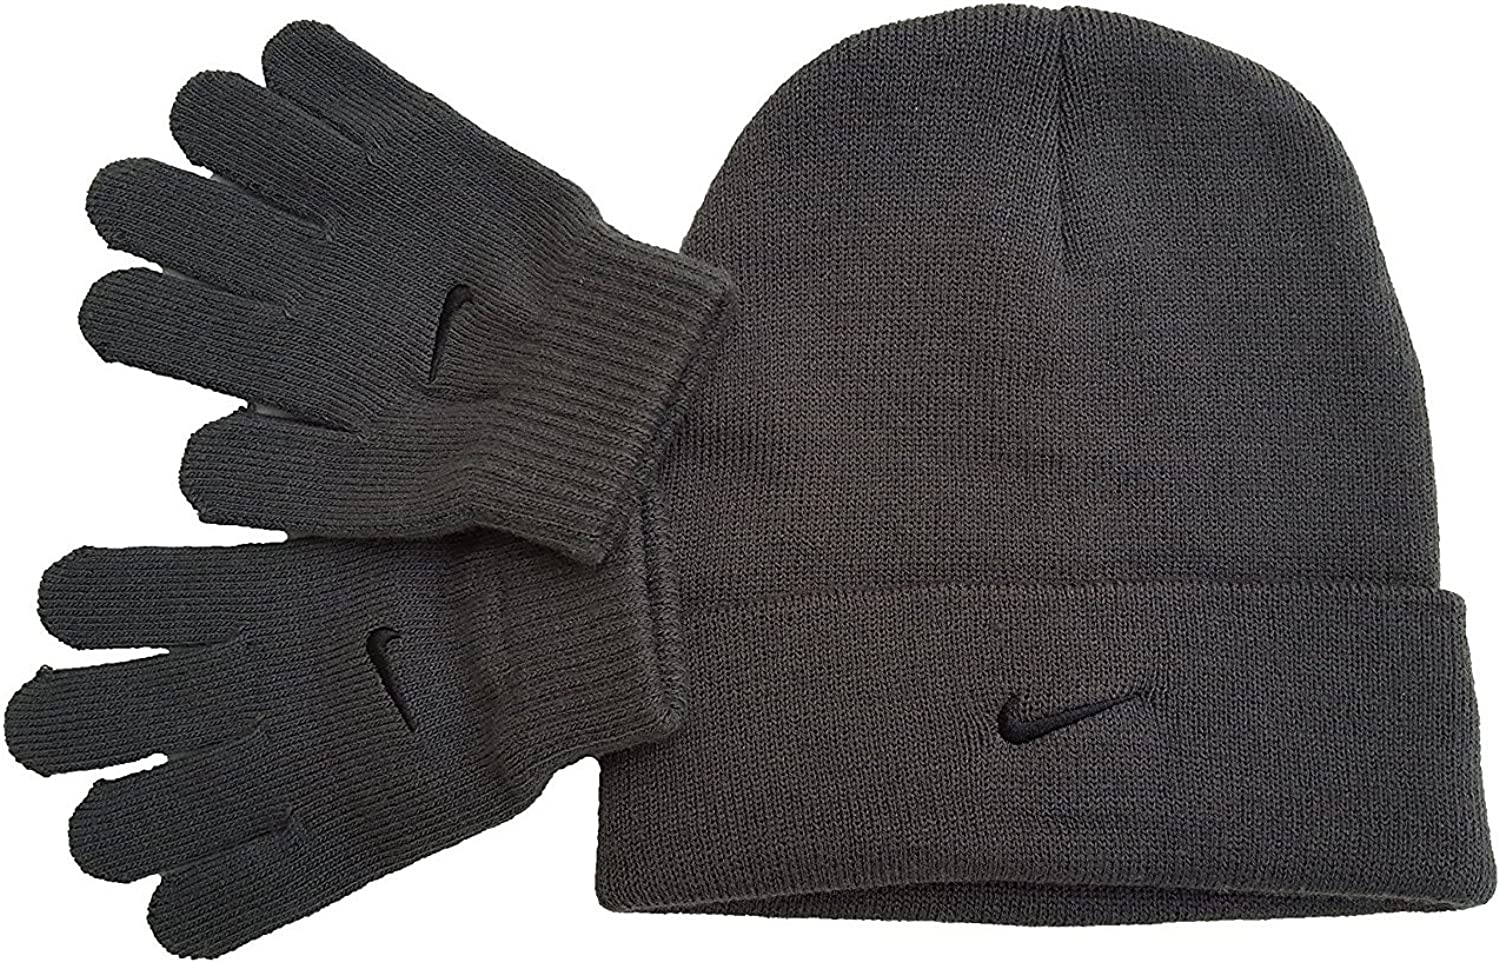 Nike Max 49% OFF 2021 model Boys One Size 8 20 2 and Piece Set Glove Hat